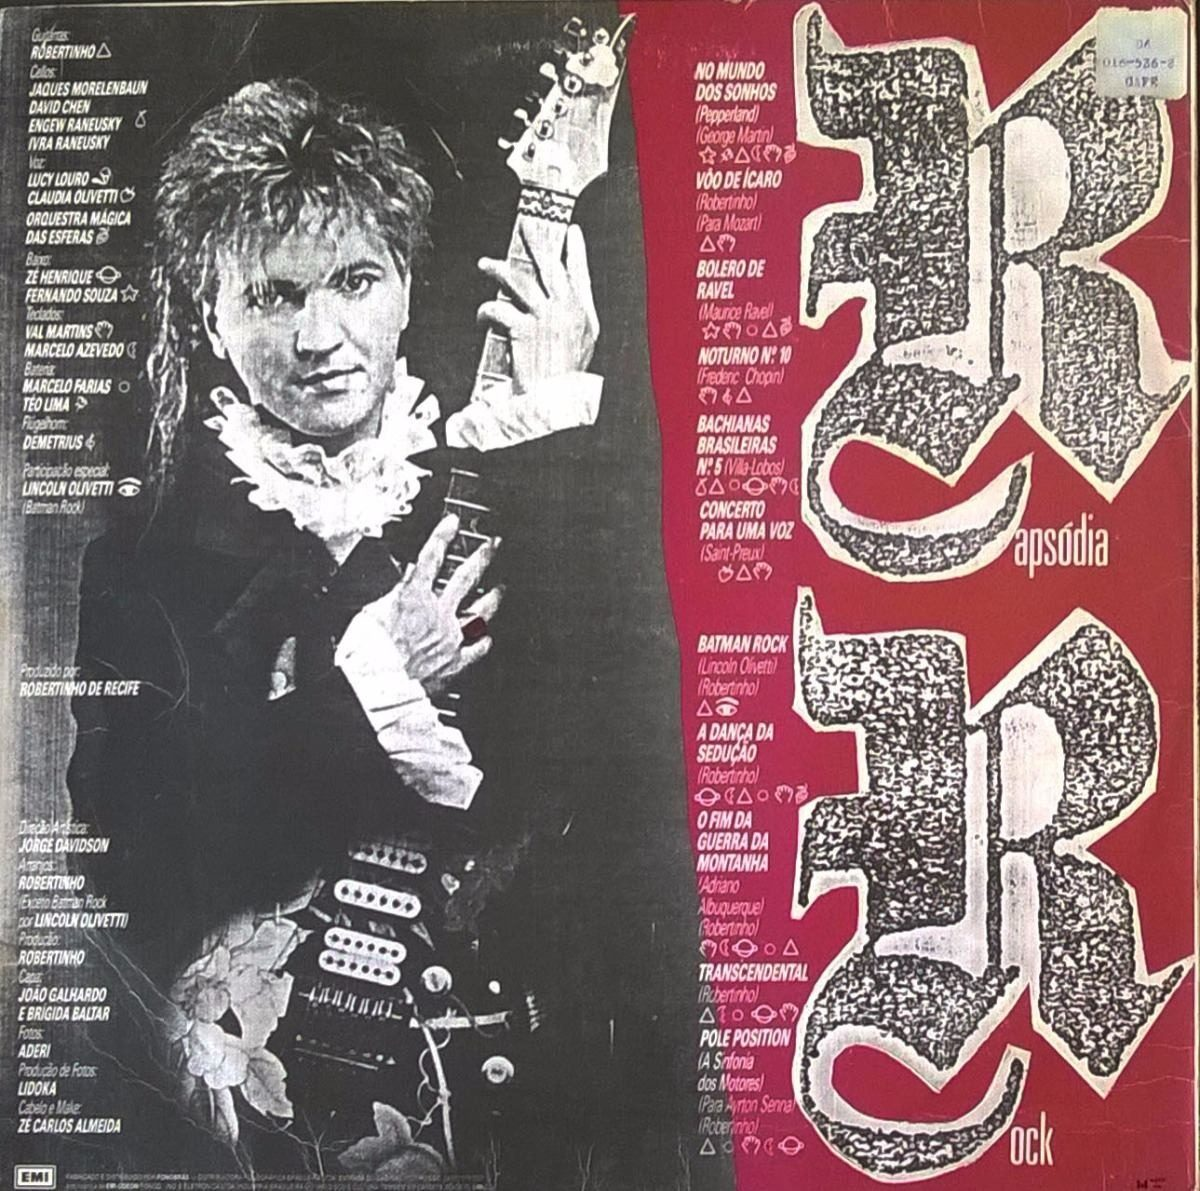 Lp Robertinho De Recife Rapsodia Rock 1990 Vinil Emi Odeon